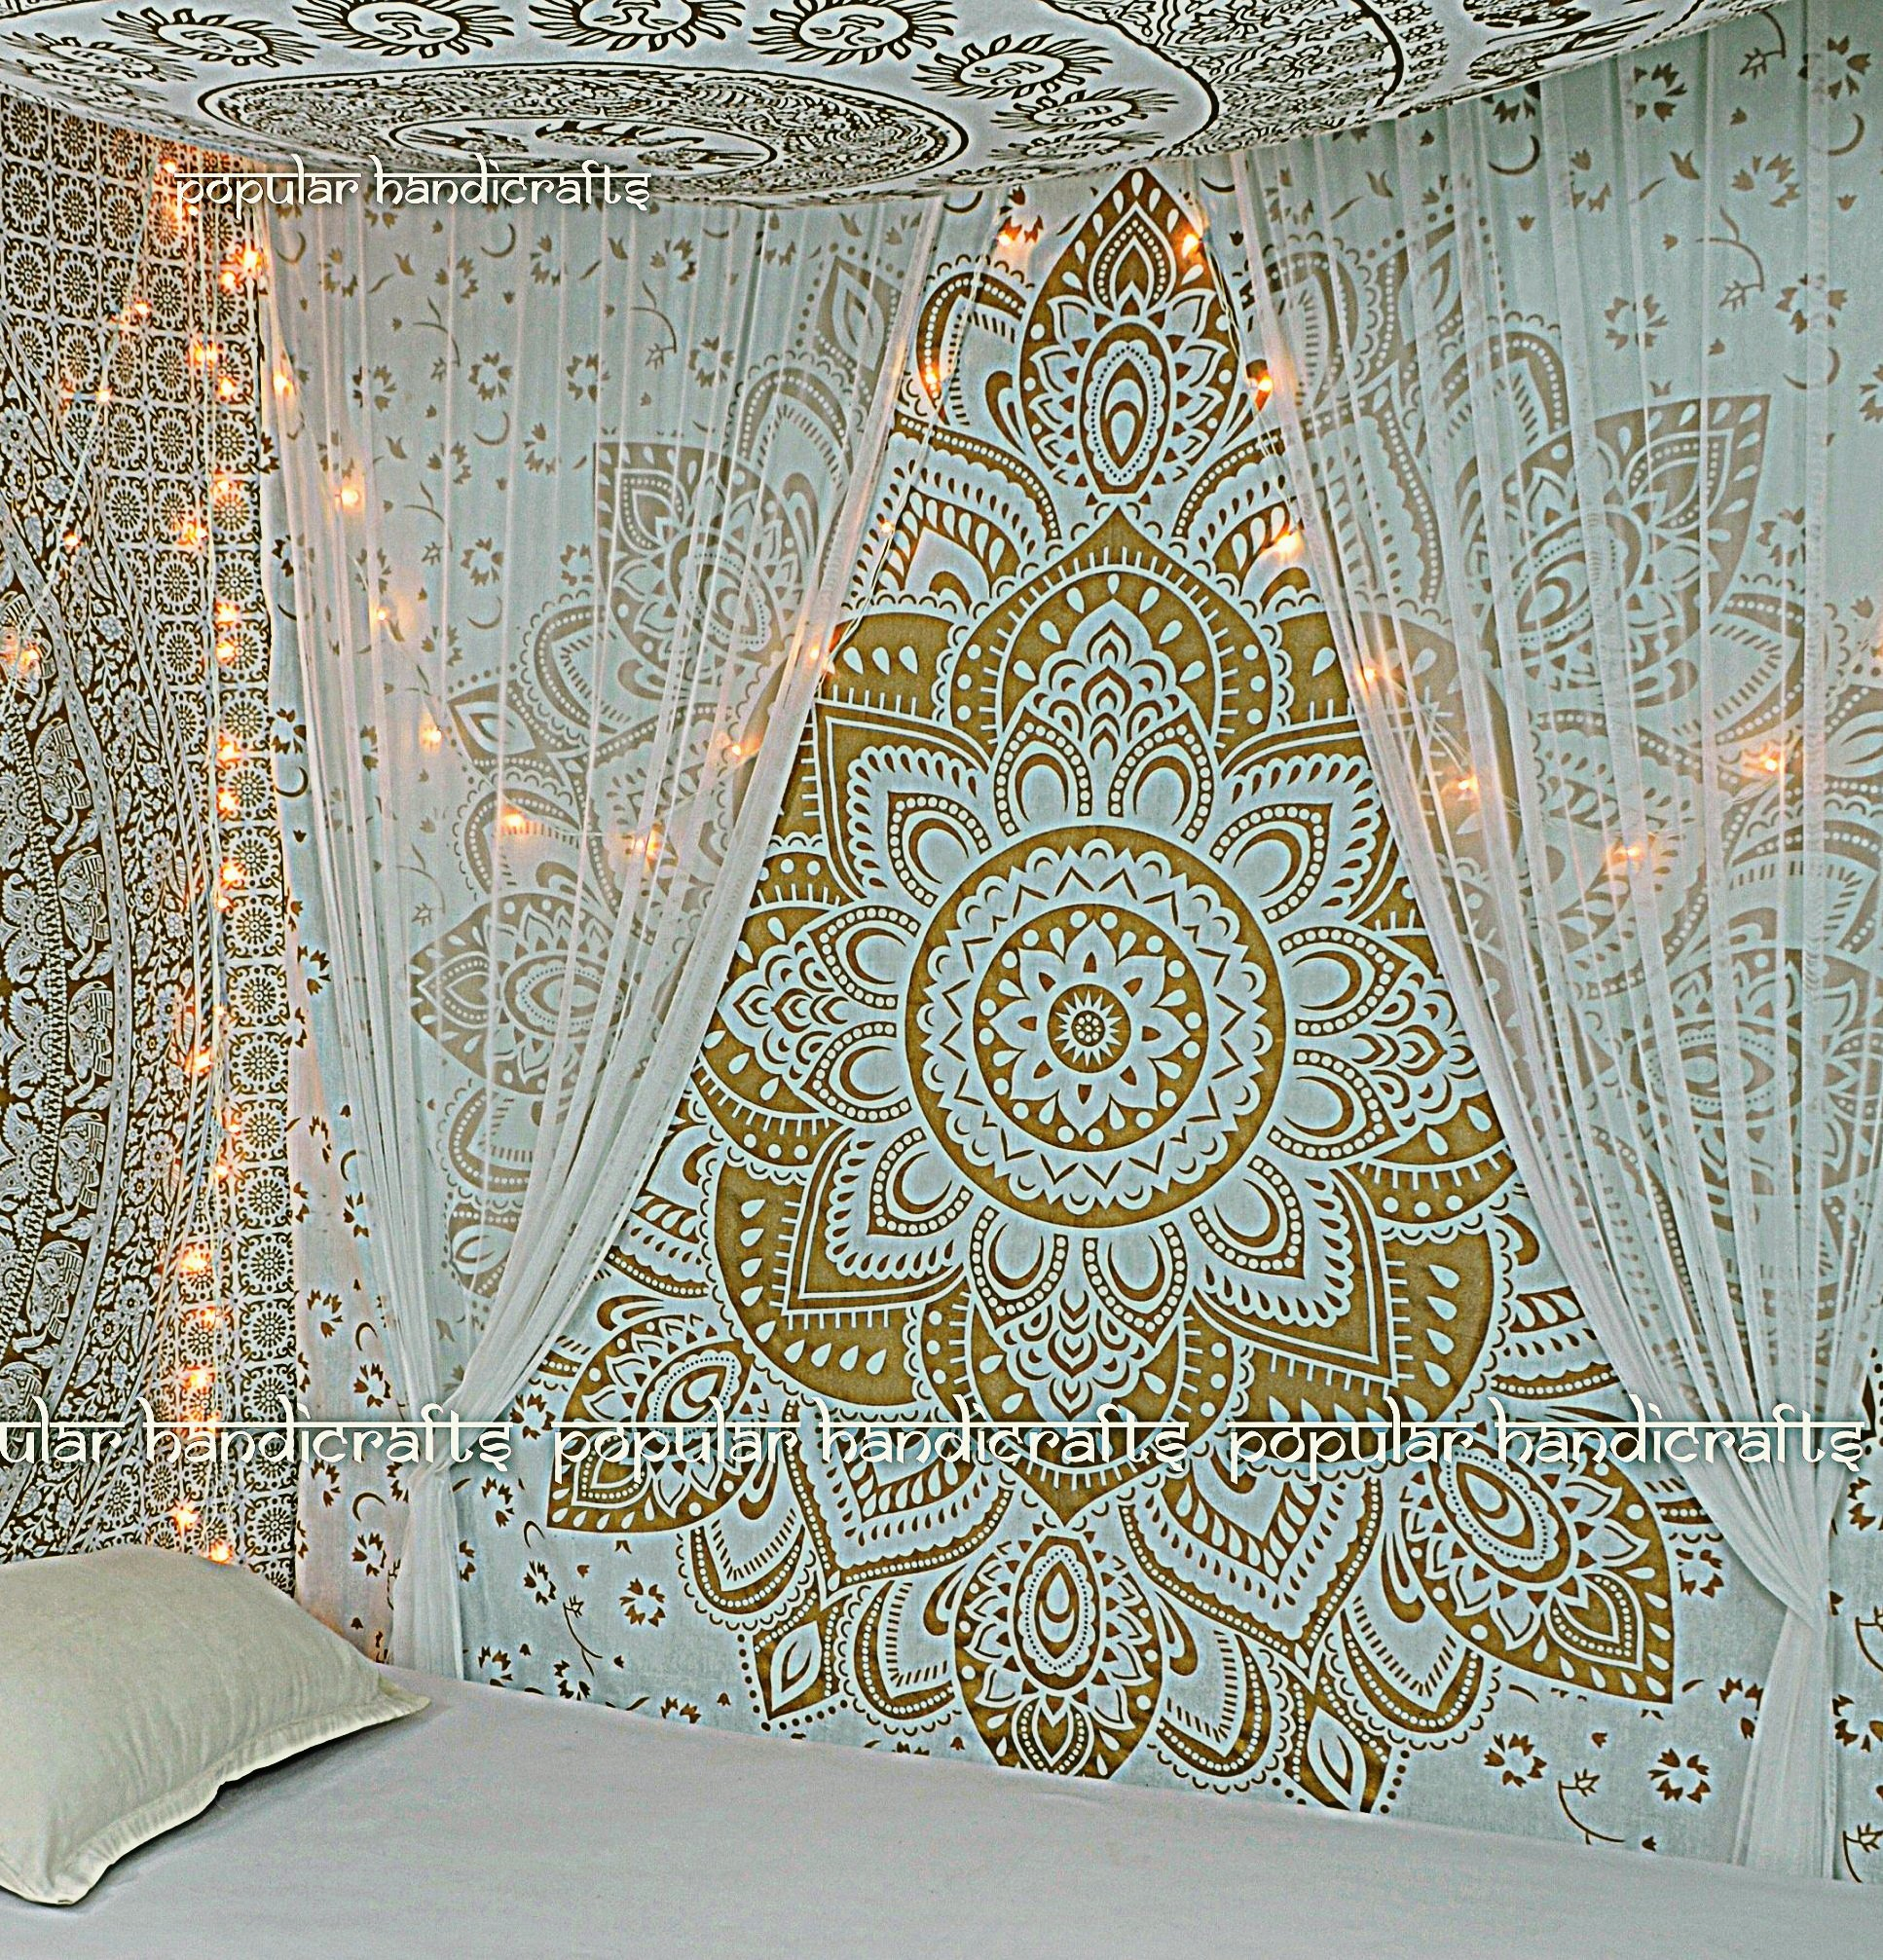 Popular Handicrafts New Launched Kp643 The Passion Gold Ombre Tapestry Indian Mandala Wall Art, Hippie Wall Hanging, Bohemian Bedspread 84''x90''(215x230cms)